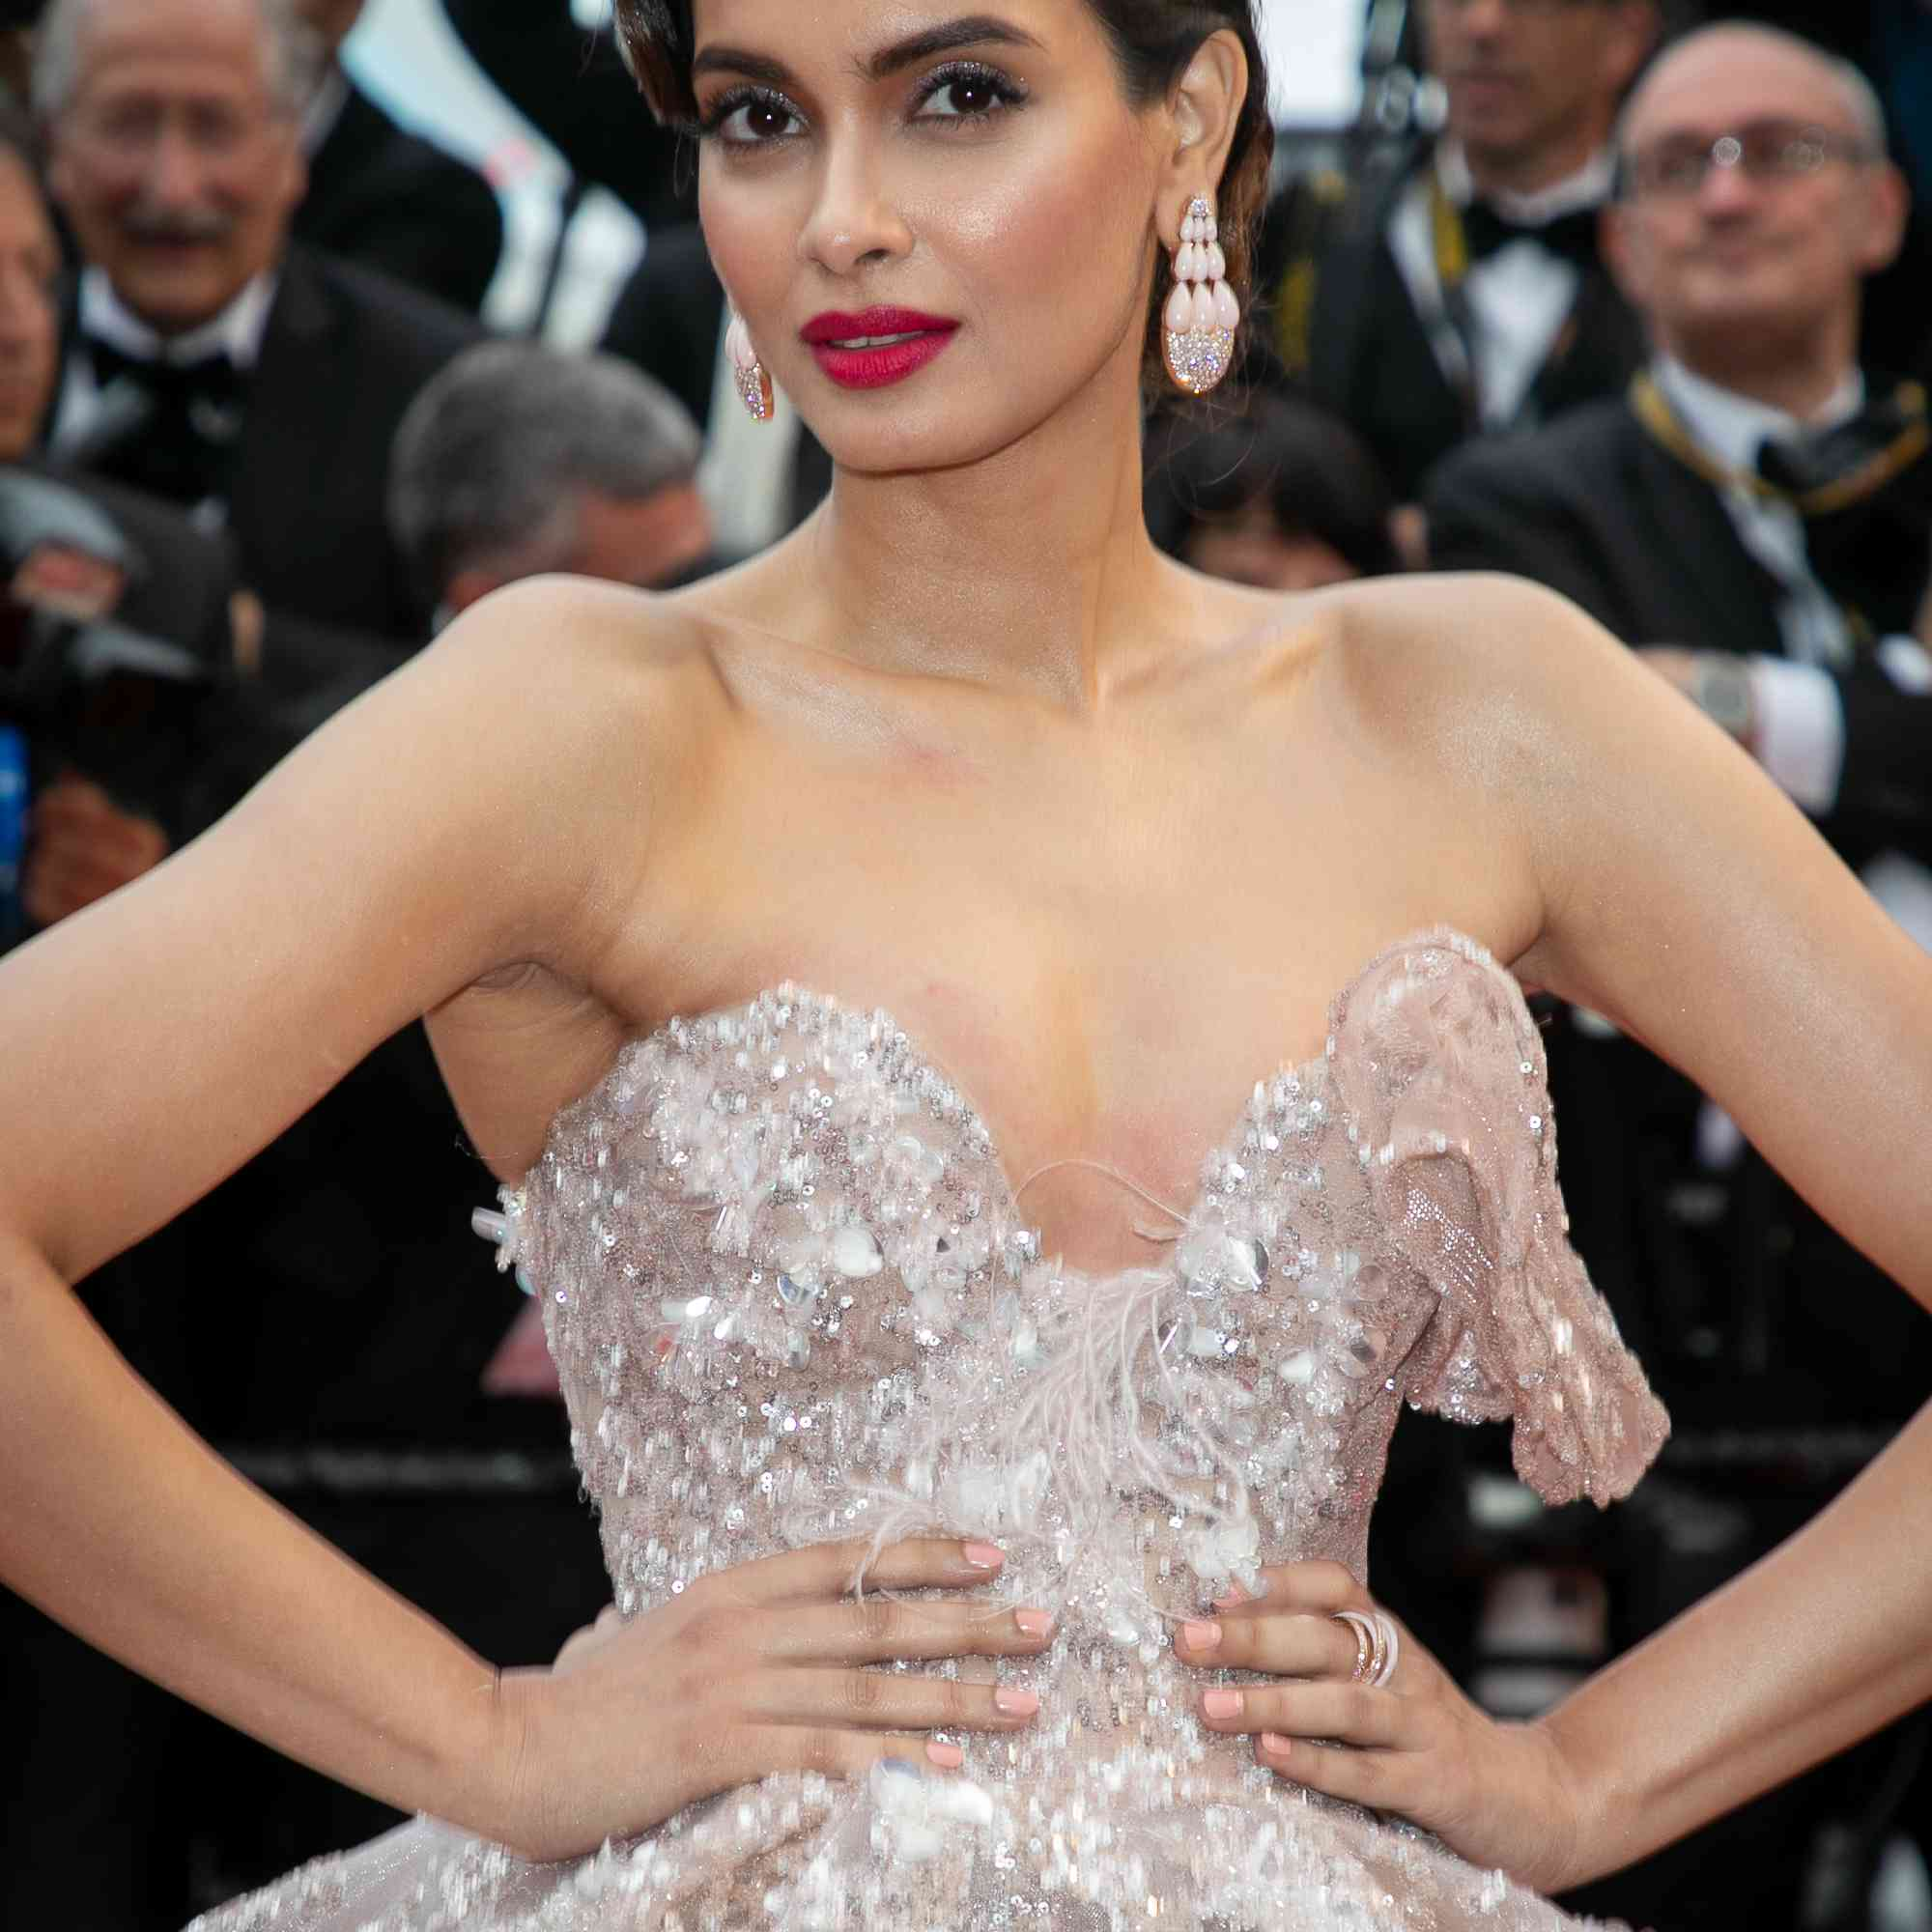 Diana Penty wearing a gown on the red carpet at the 72nd annual cannes film festival